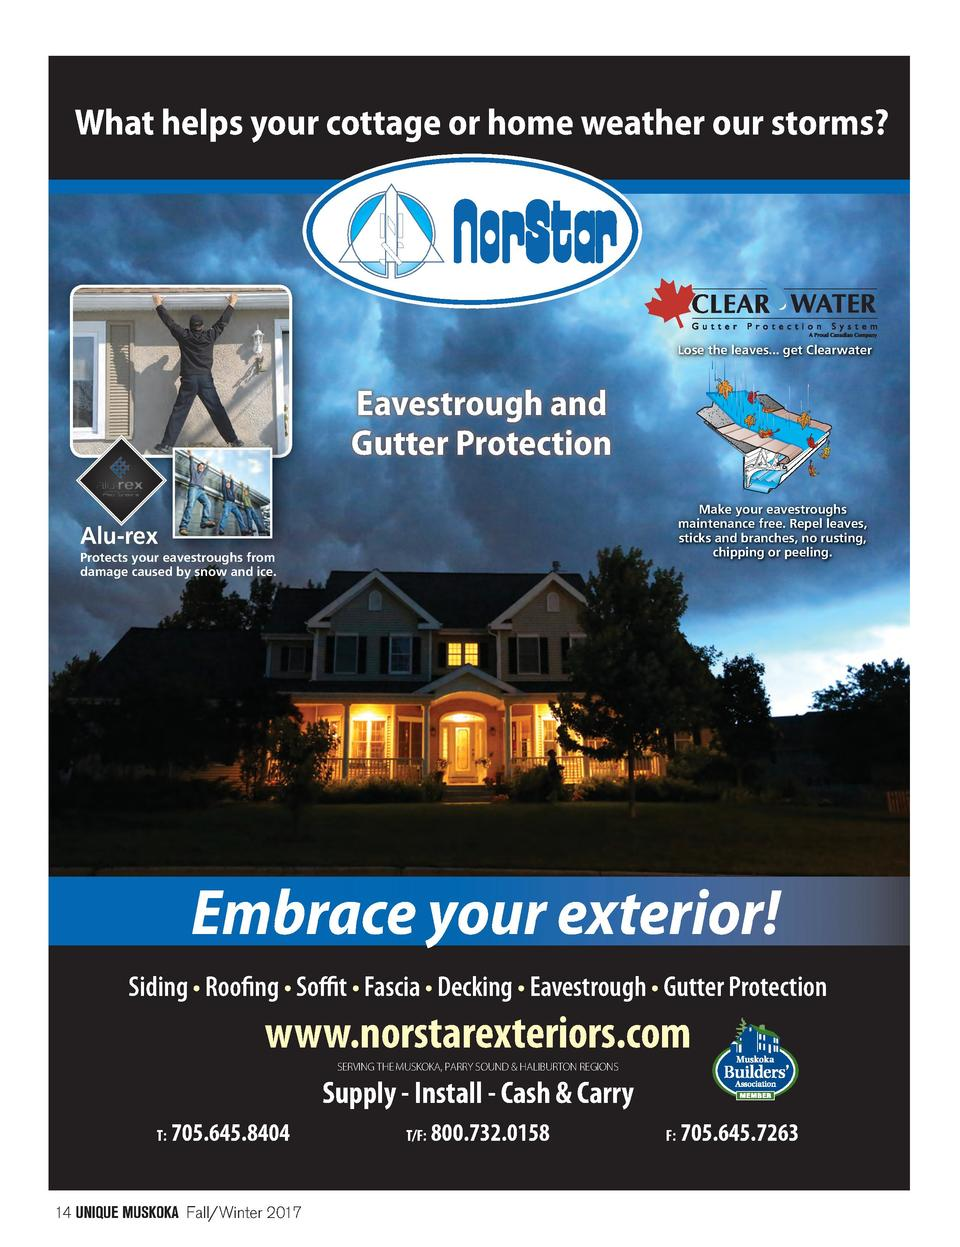 What helps your cottage or home weather our storms   Lose the leaves... get Clearwater  Eavestrough and Gutter Protection ...